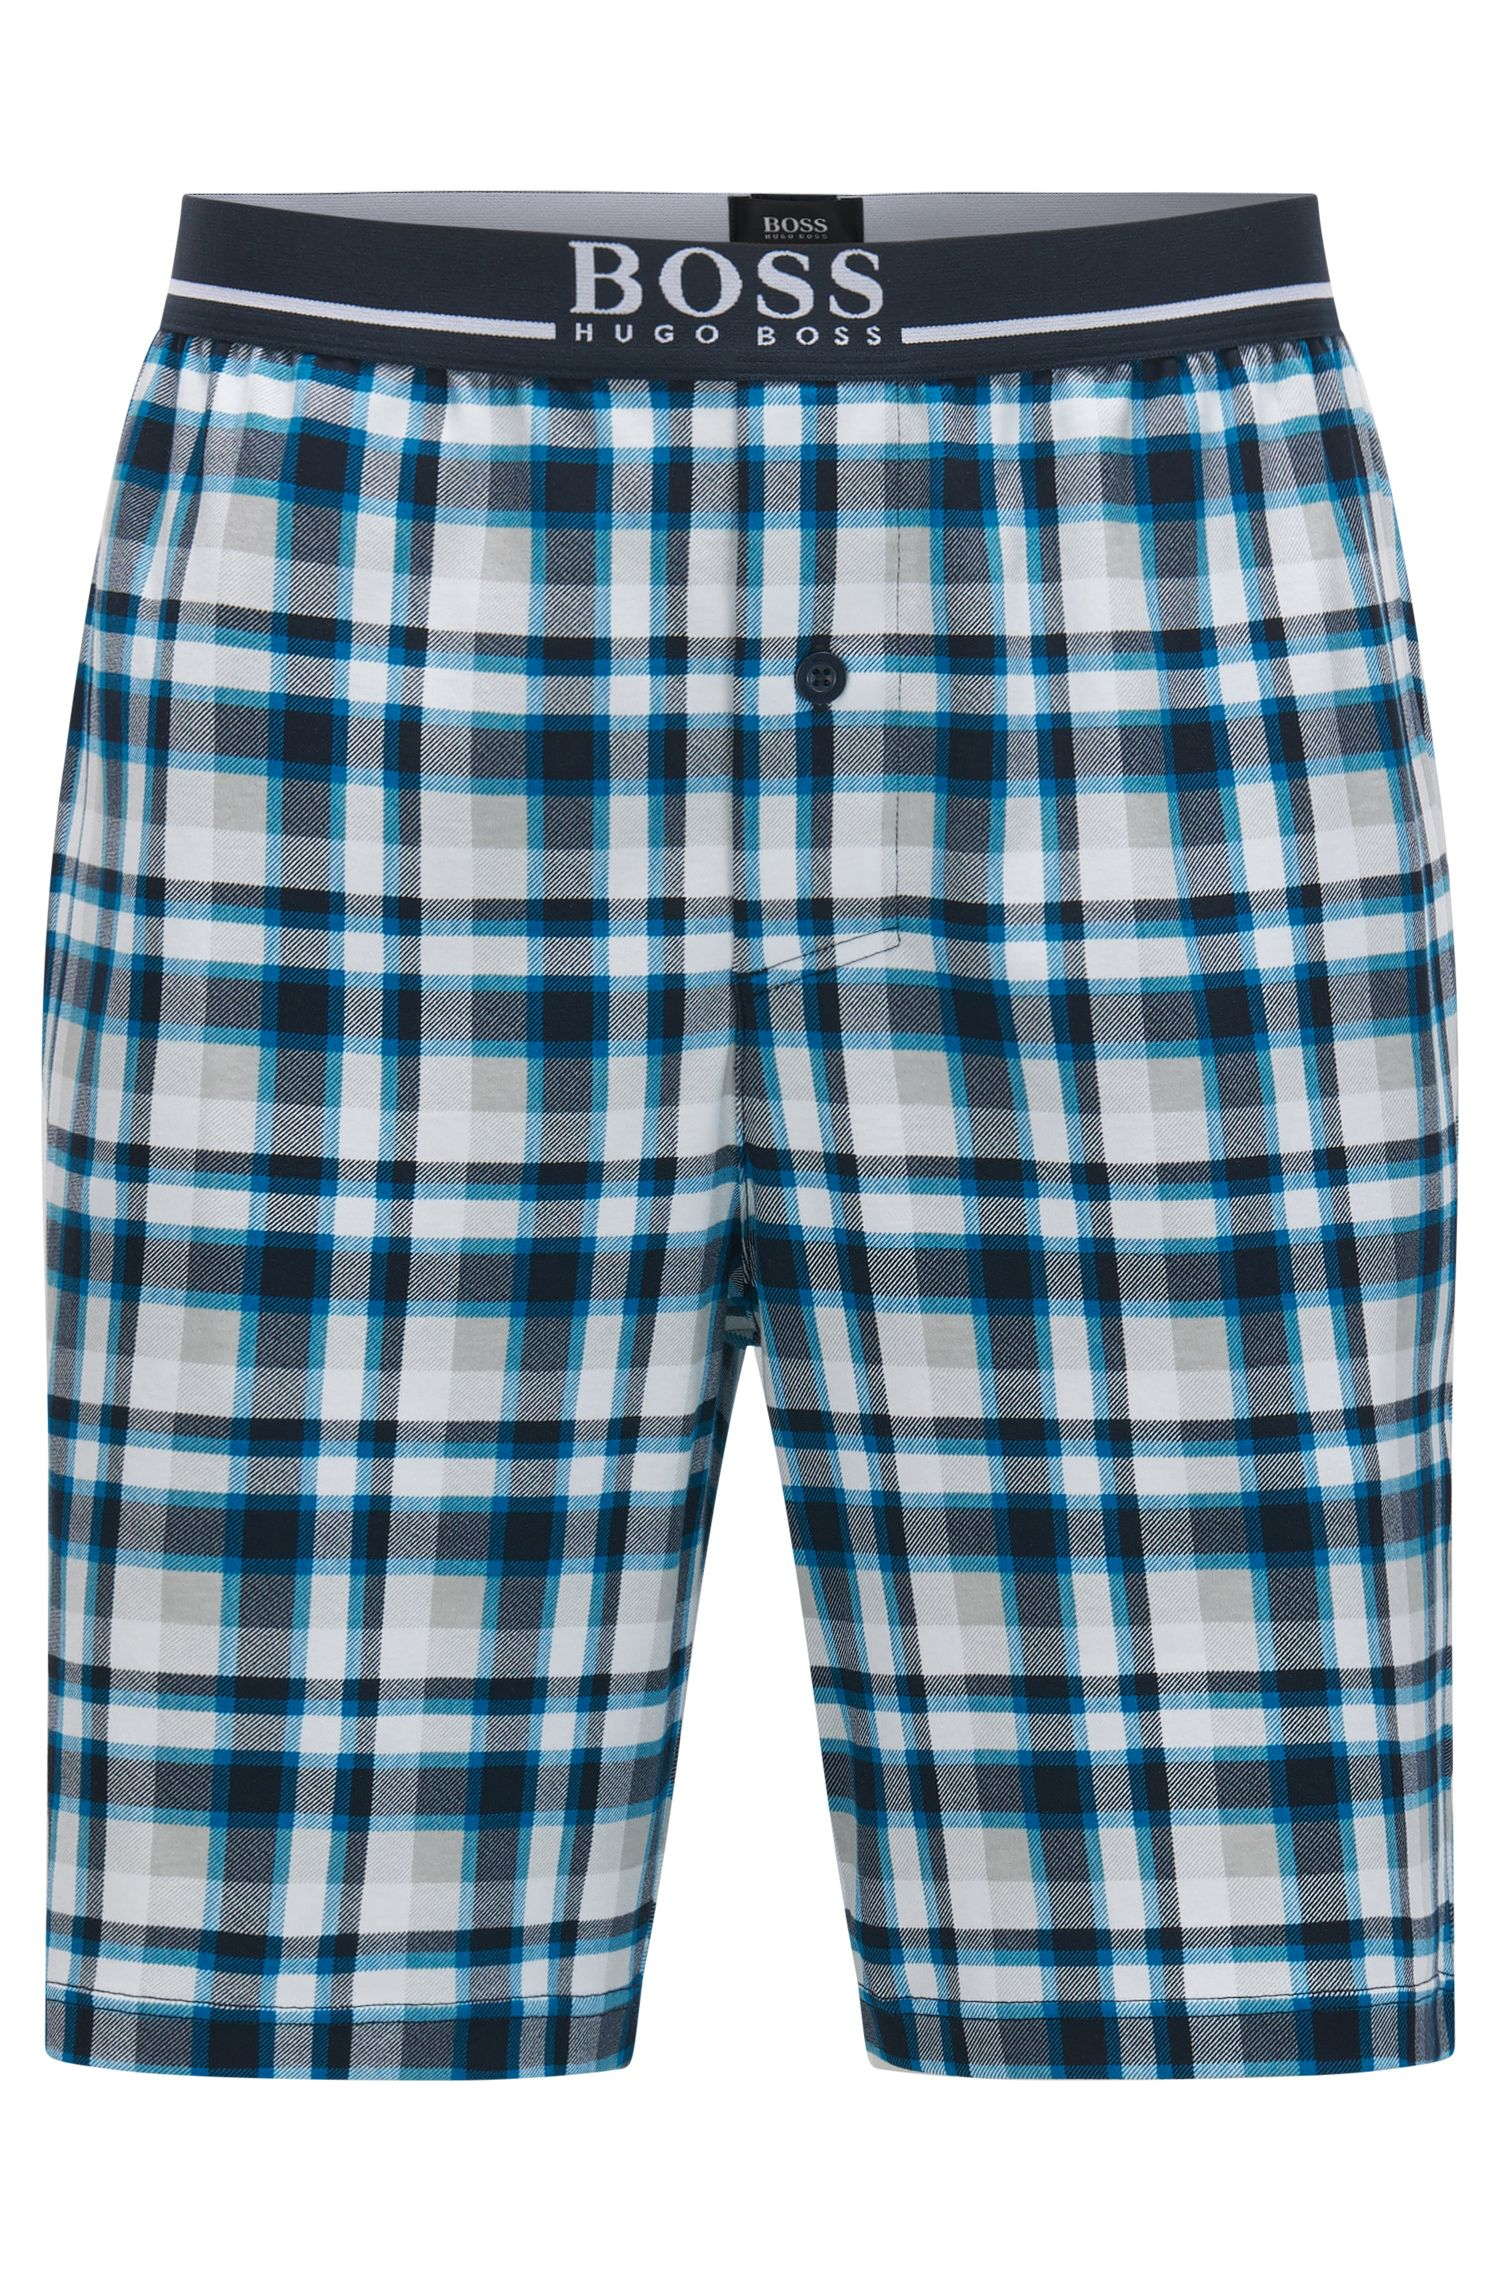 Checked pyjama shorts in interlock cotton